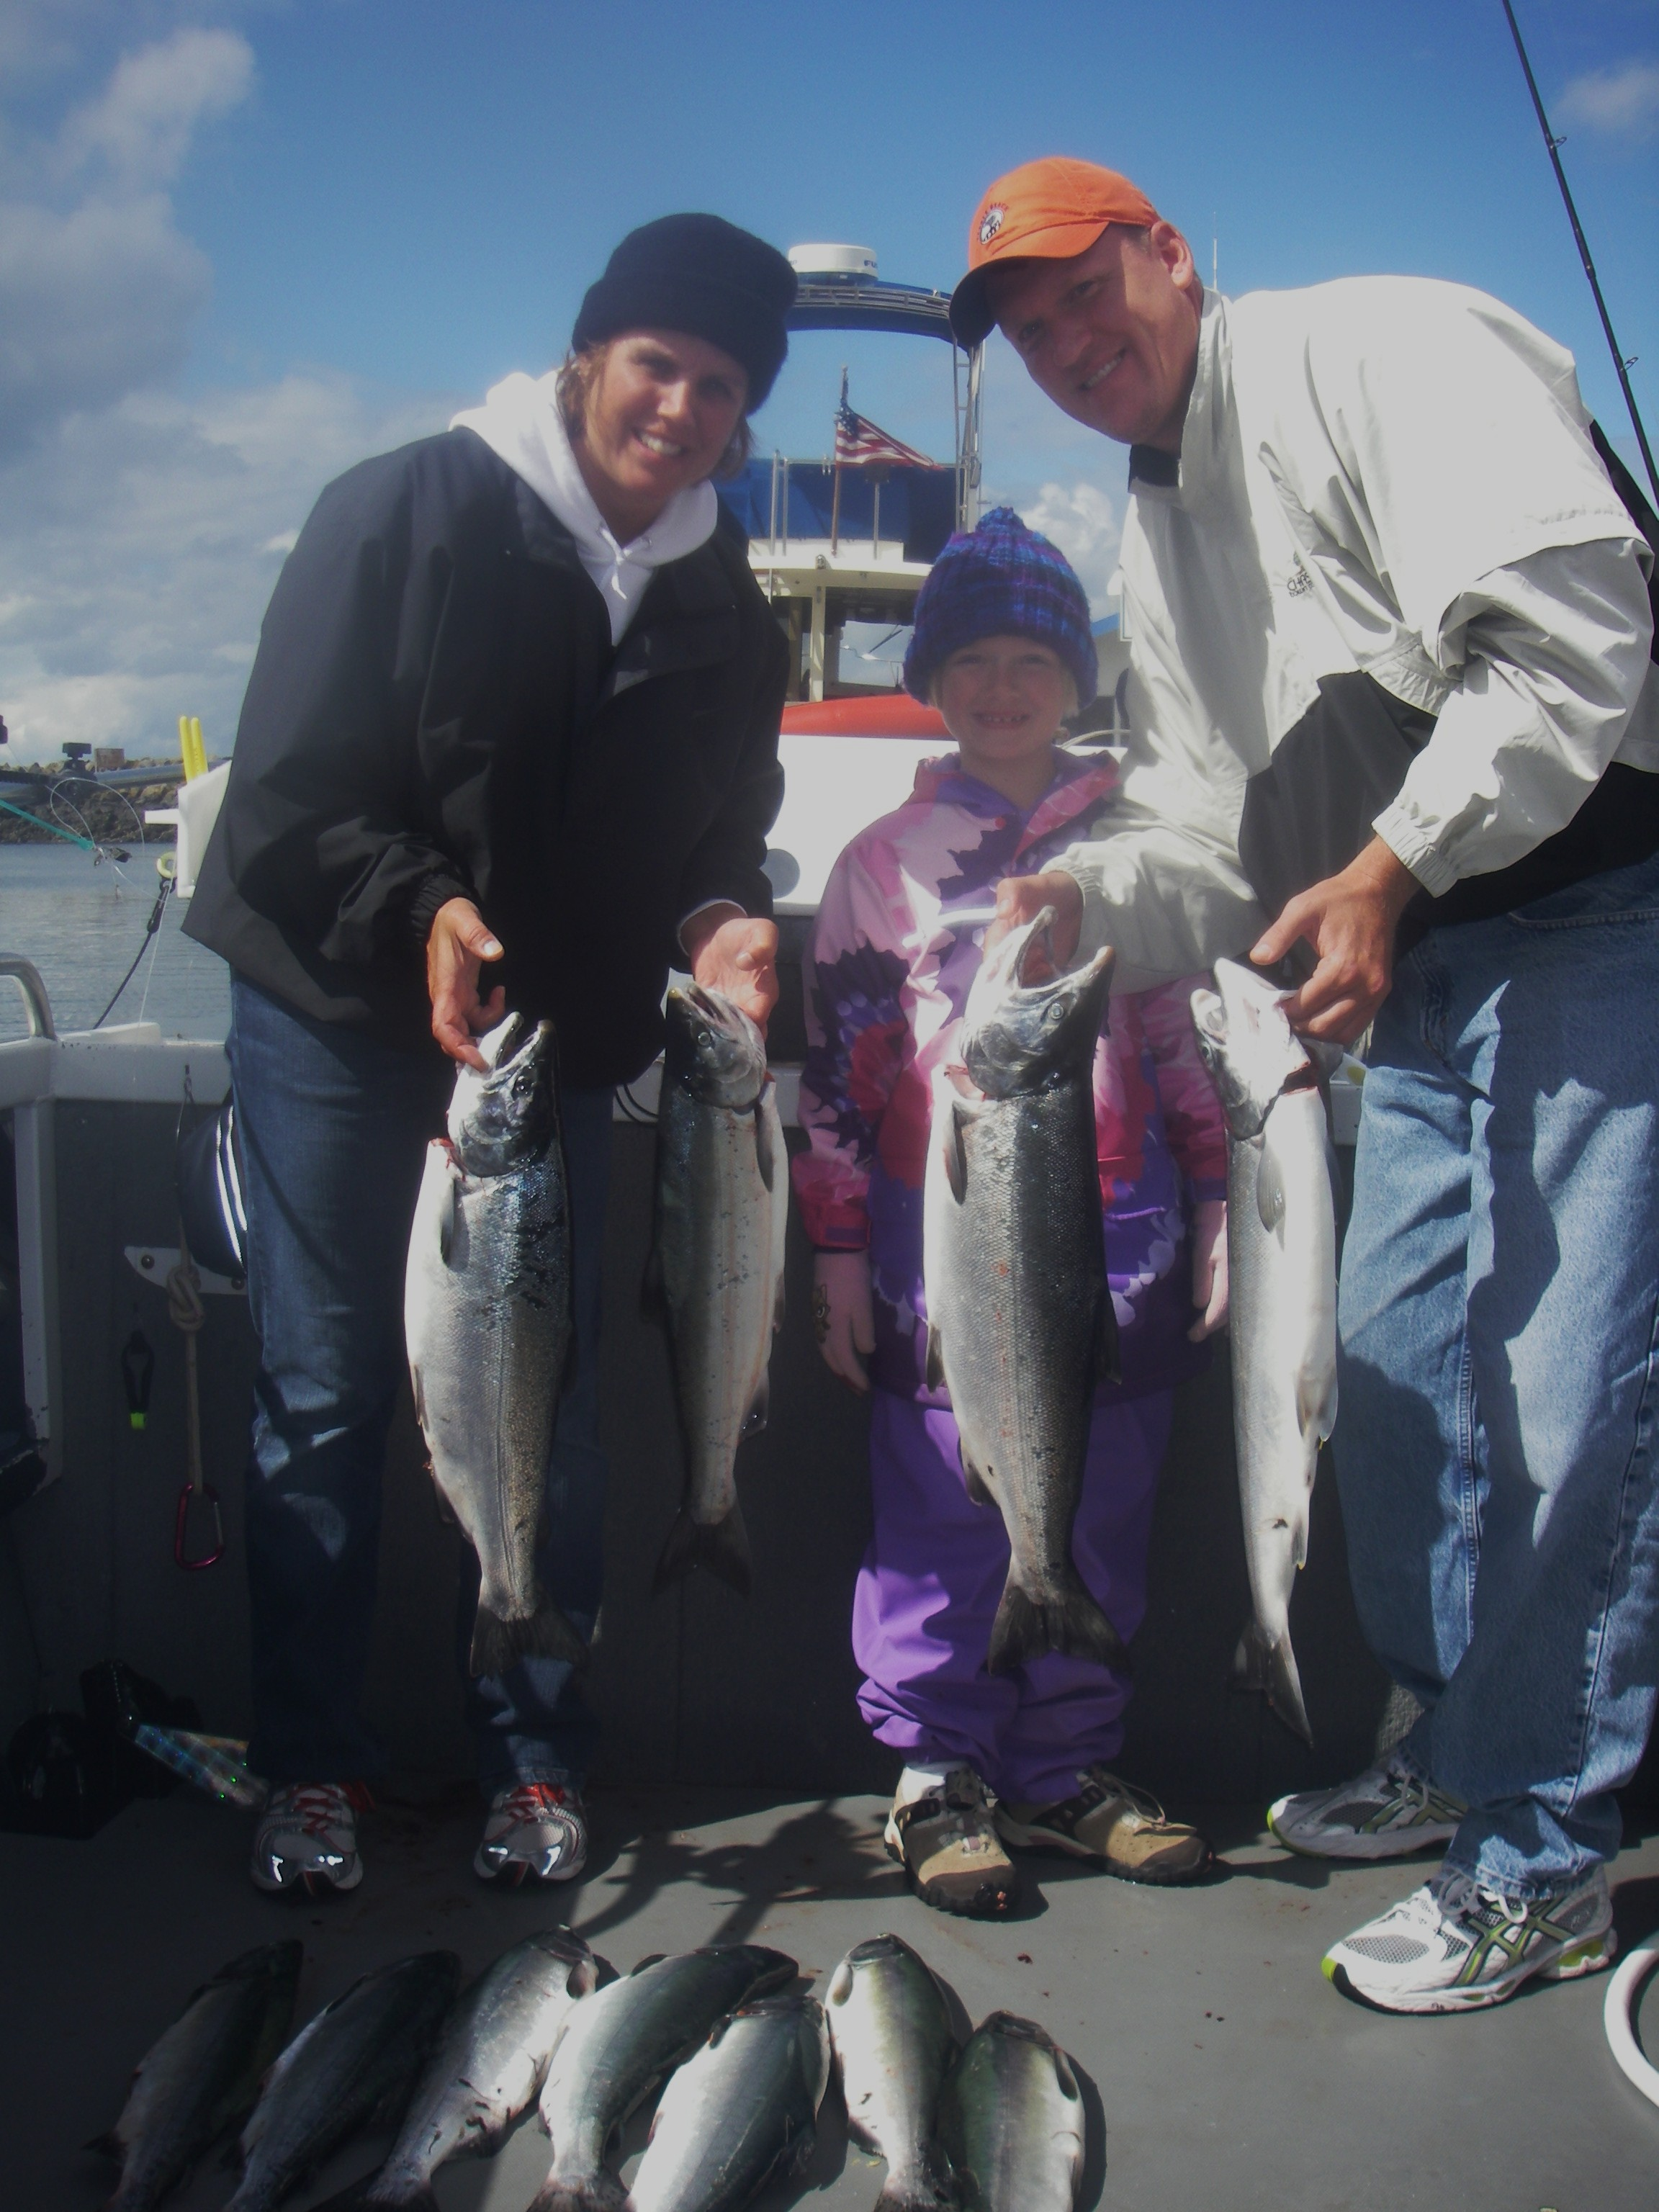 Charter fly fishing trips prices rates in seattle wa for Seattle washington fishing charters